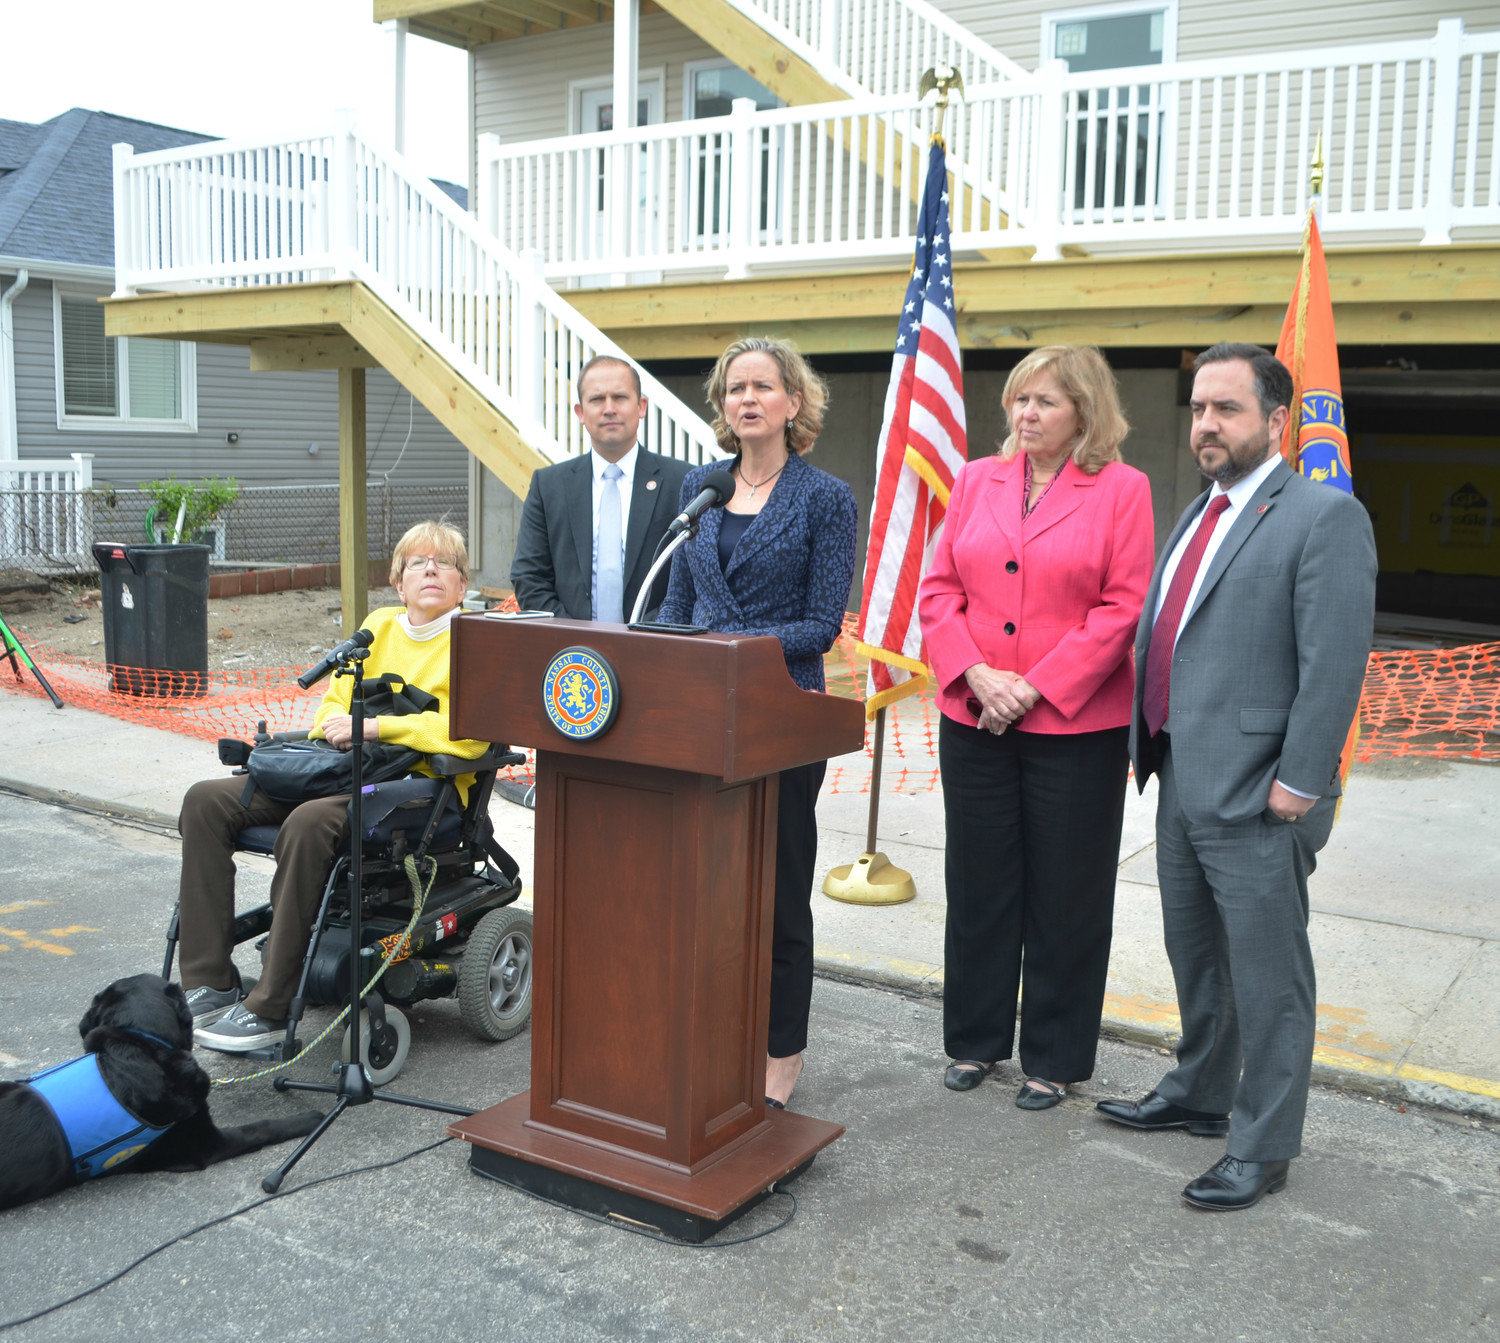 County Executive Laura Curran announced on Monday that county officials are pushing for new legislation that would strengthen protections for contractor fraud victims.